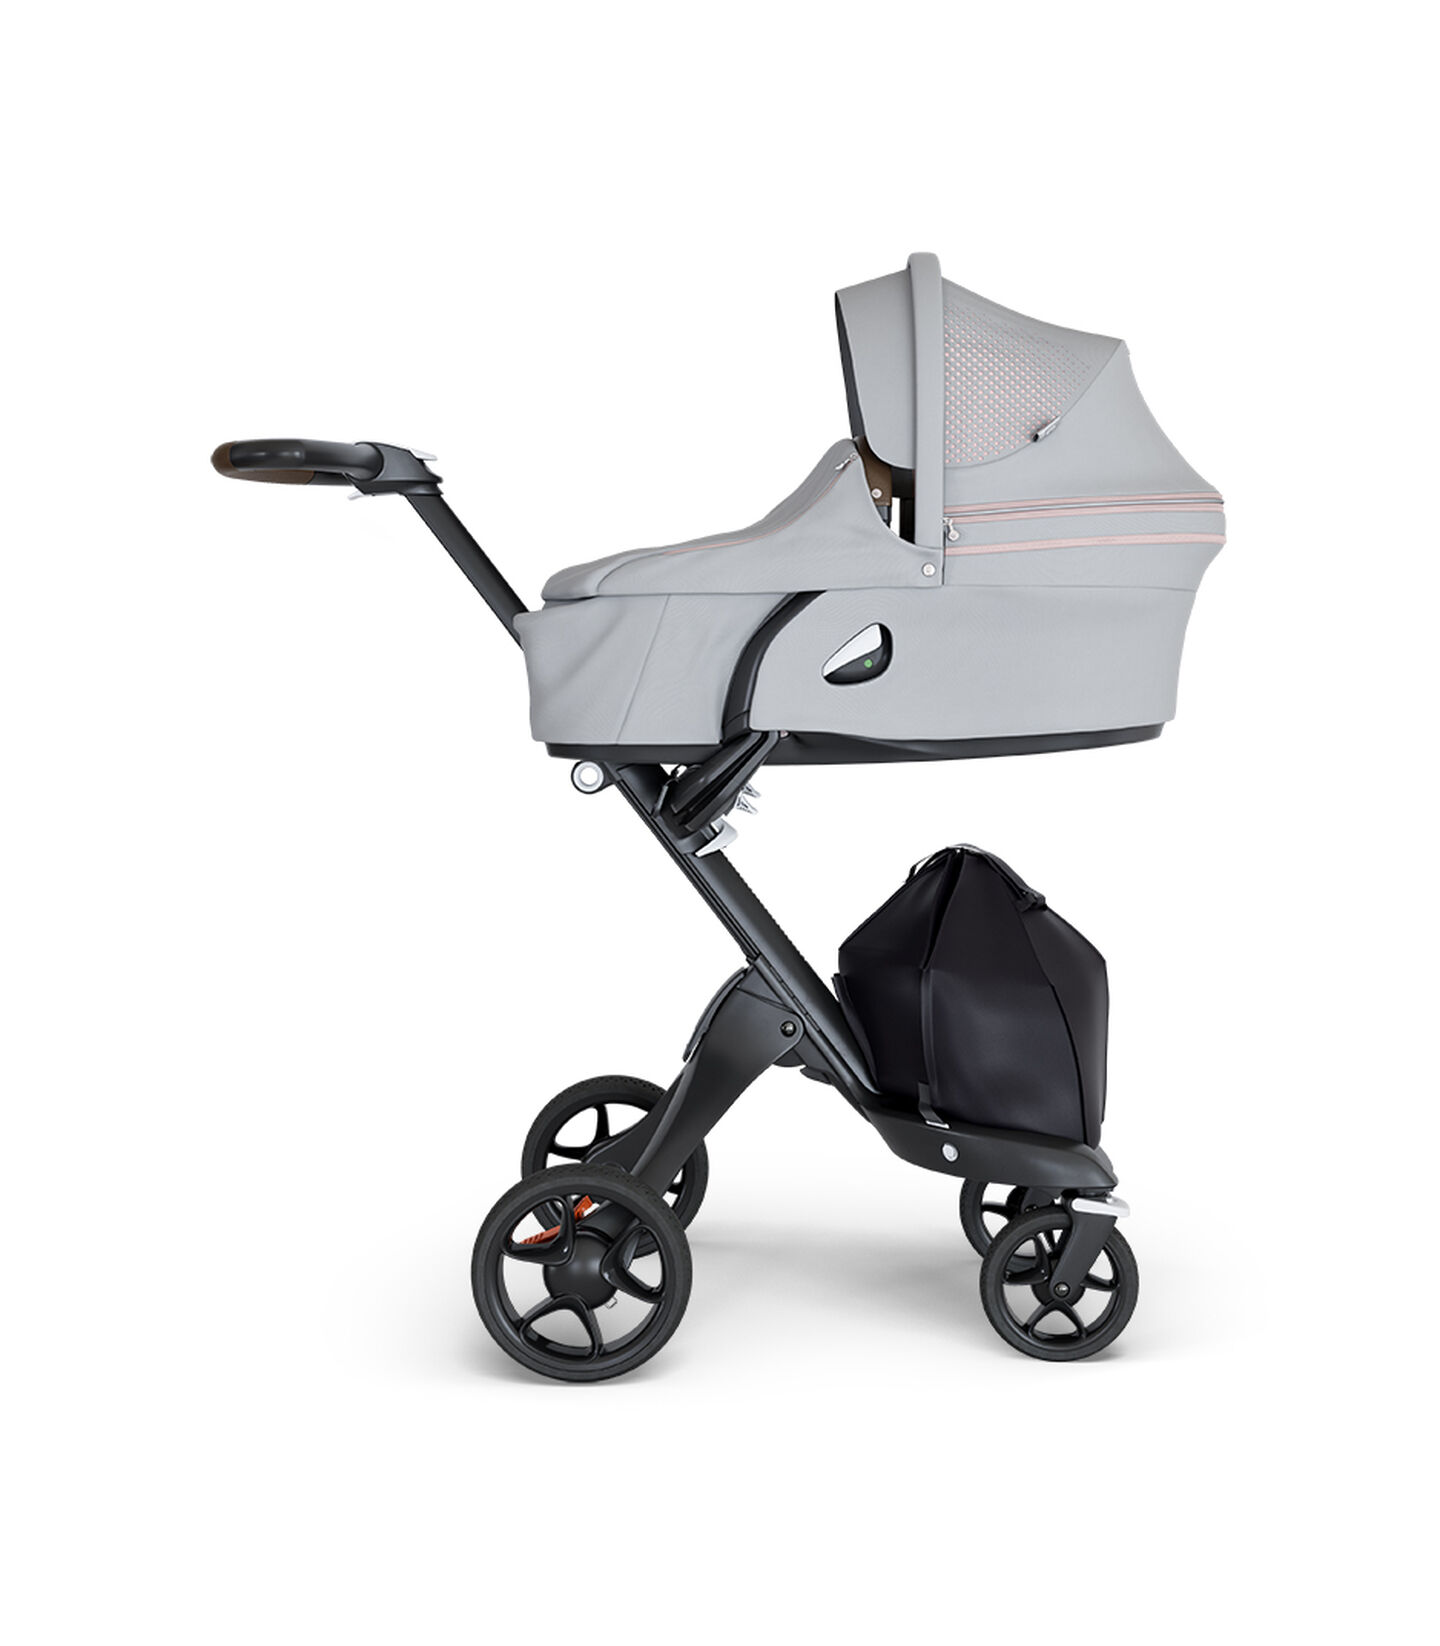 Stokke® Xplory® wtih Black Chassis and Leatherette Brown handle. Stokke® Stroller Carry Cot Athleisure Pink.